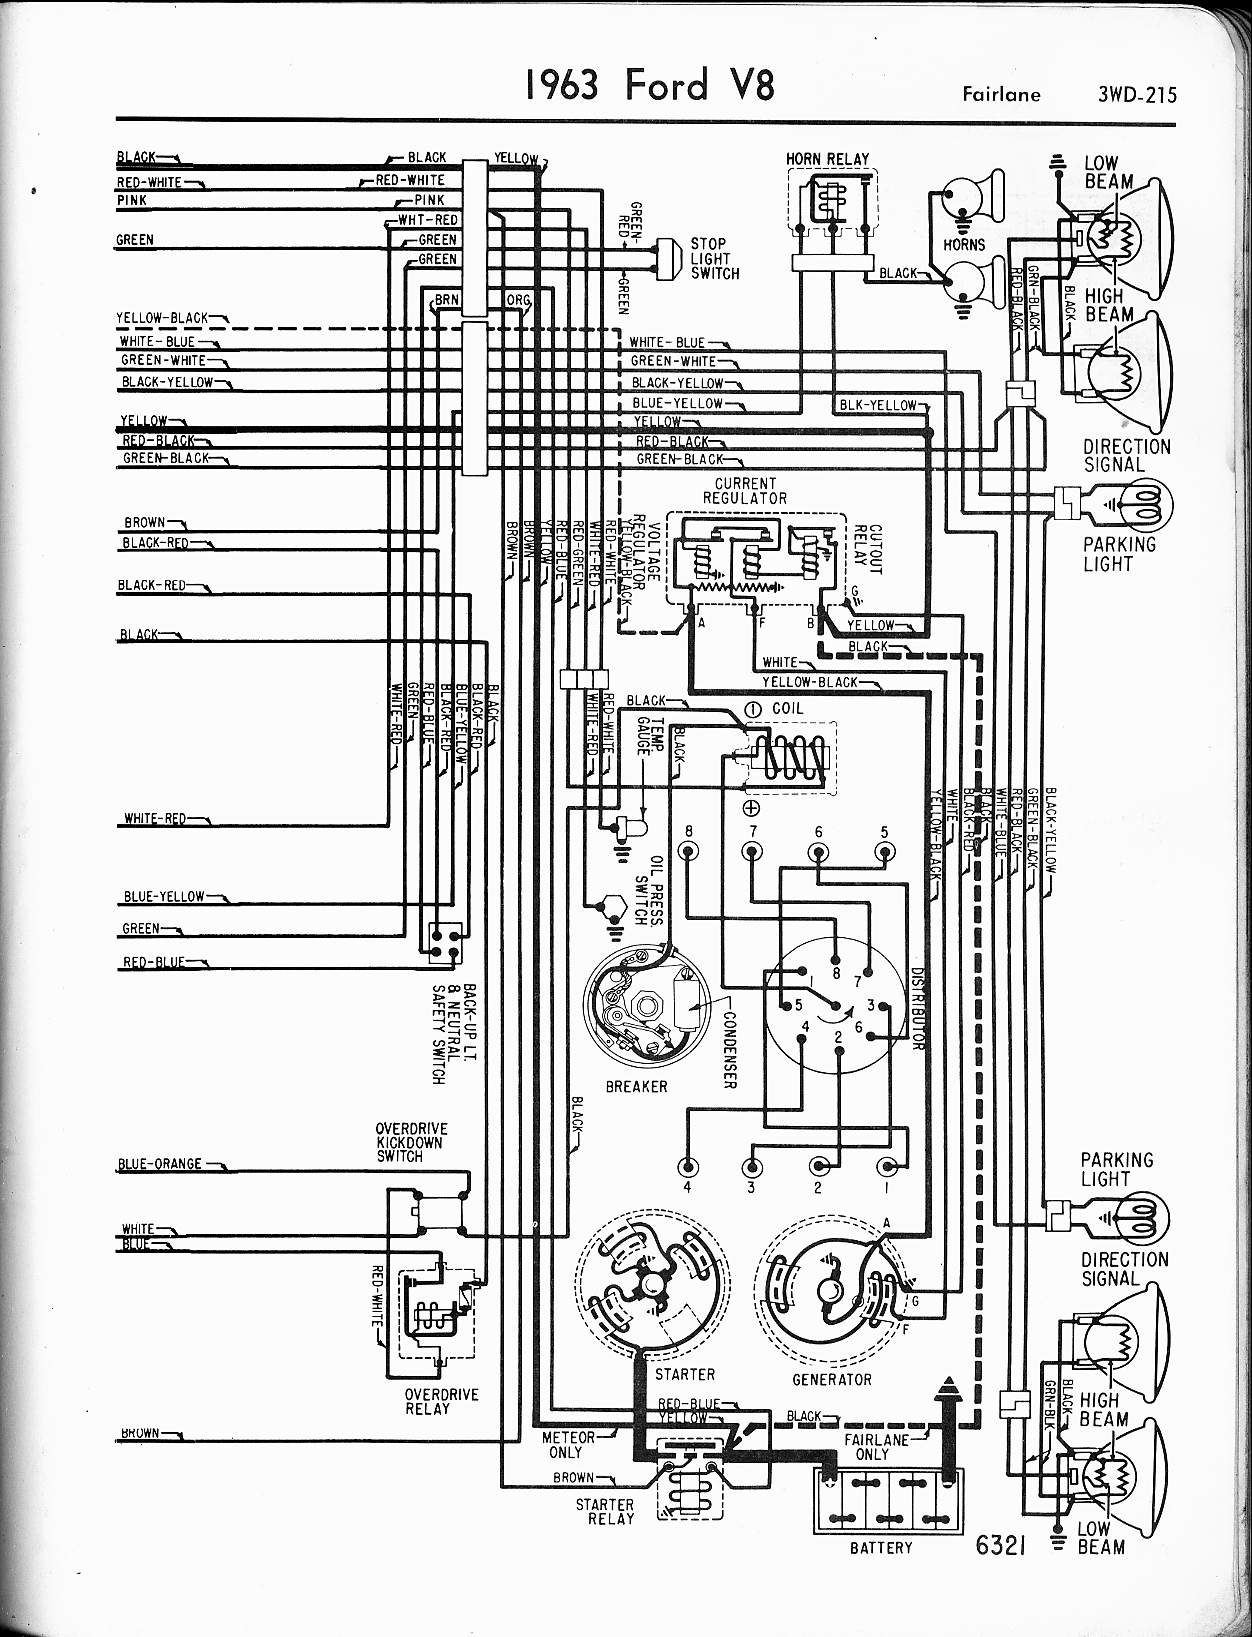 1965 fairlane wiring harness wiring diagram pictures u2022 rh mapavick co  uk 1969 Fairlane 1965 Falcon